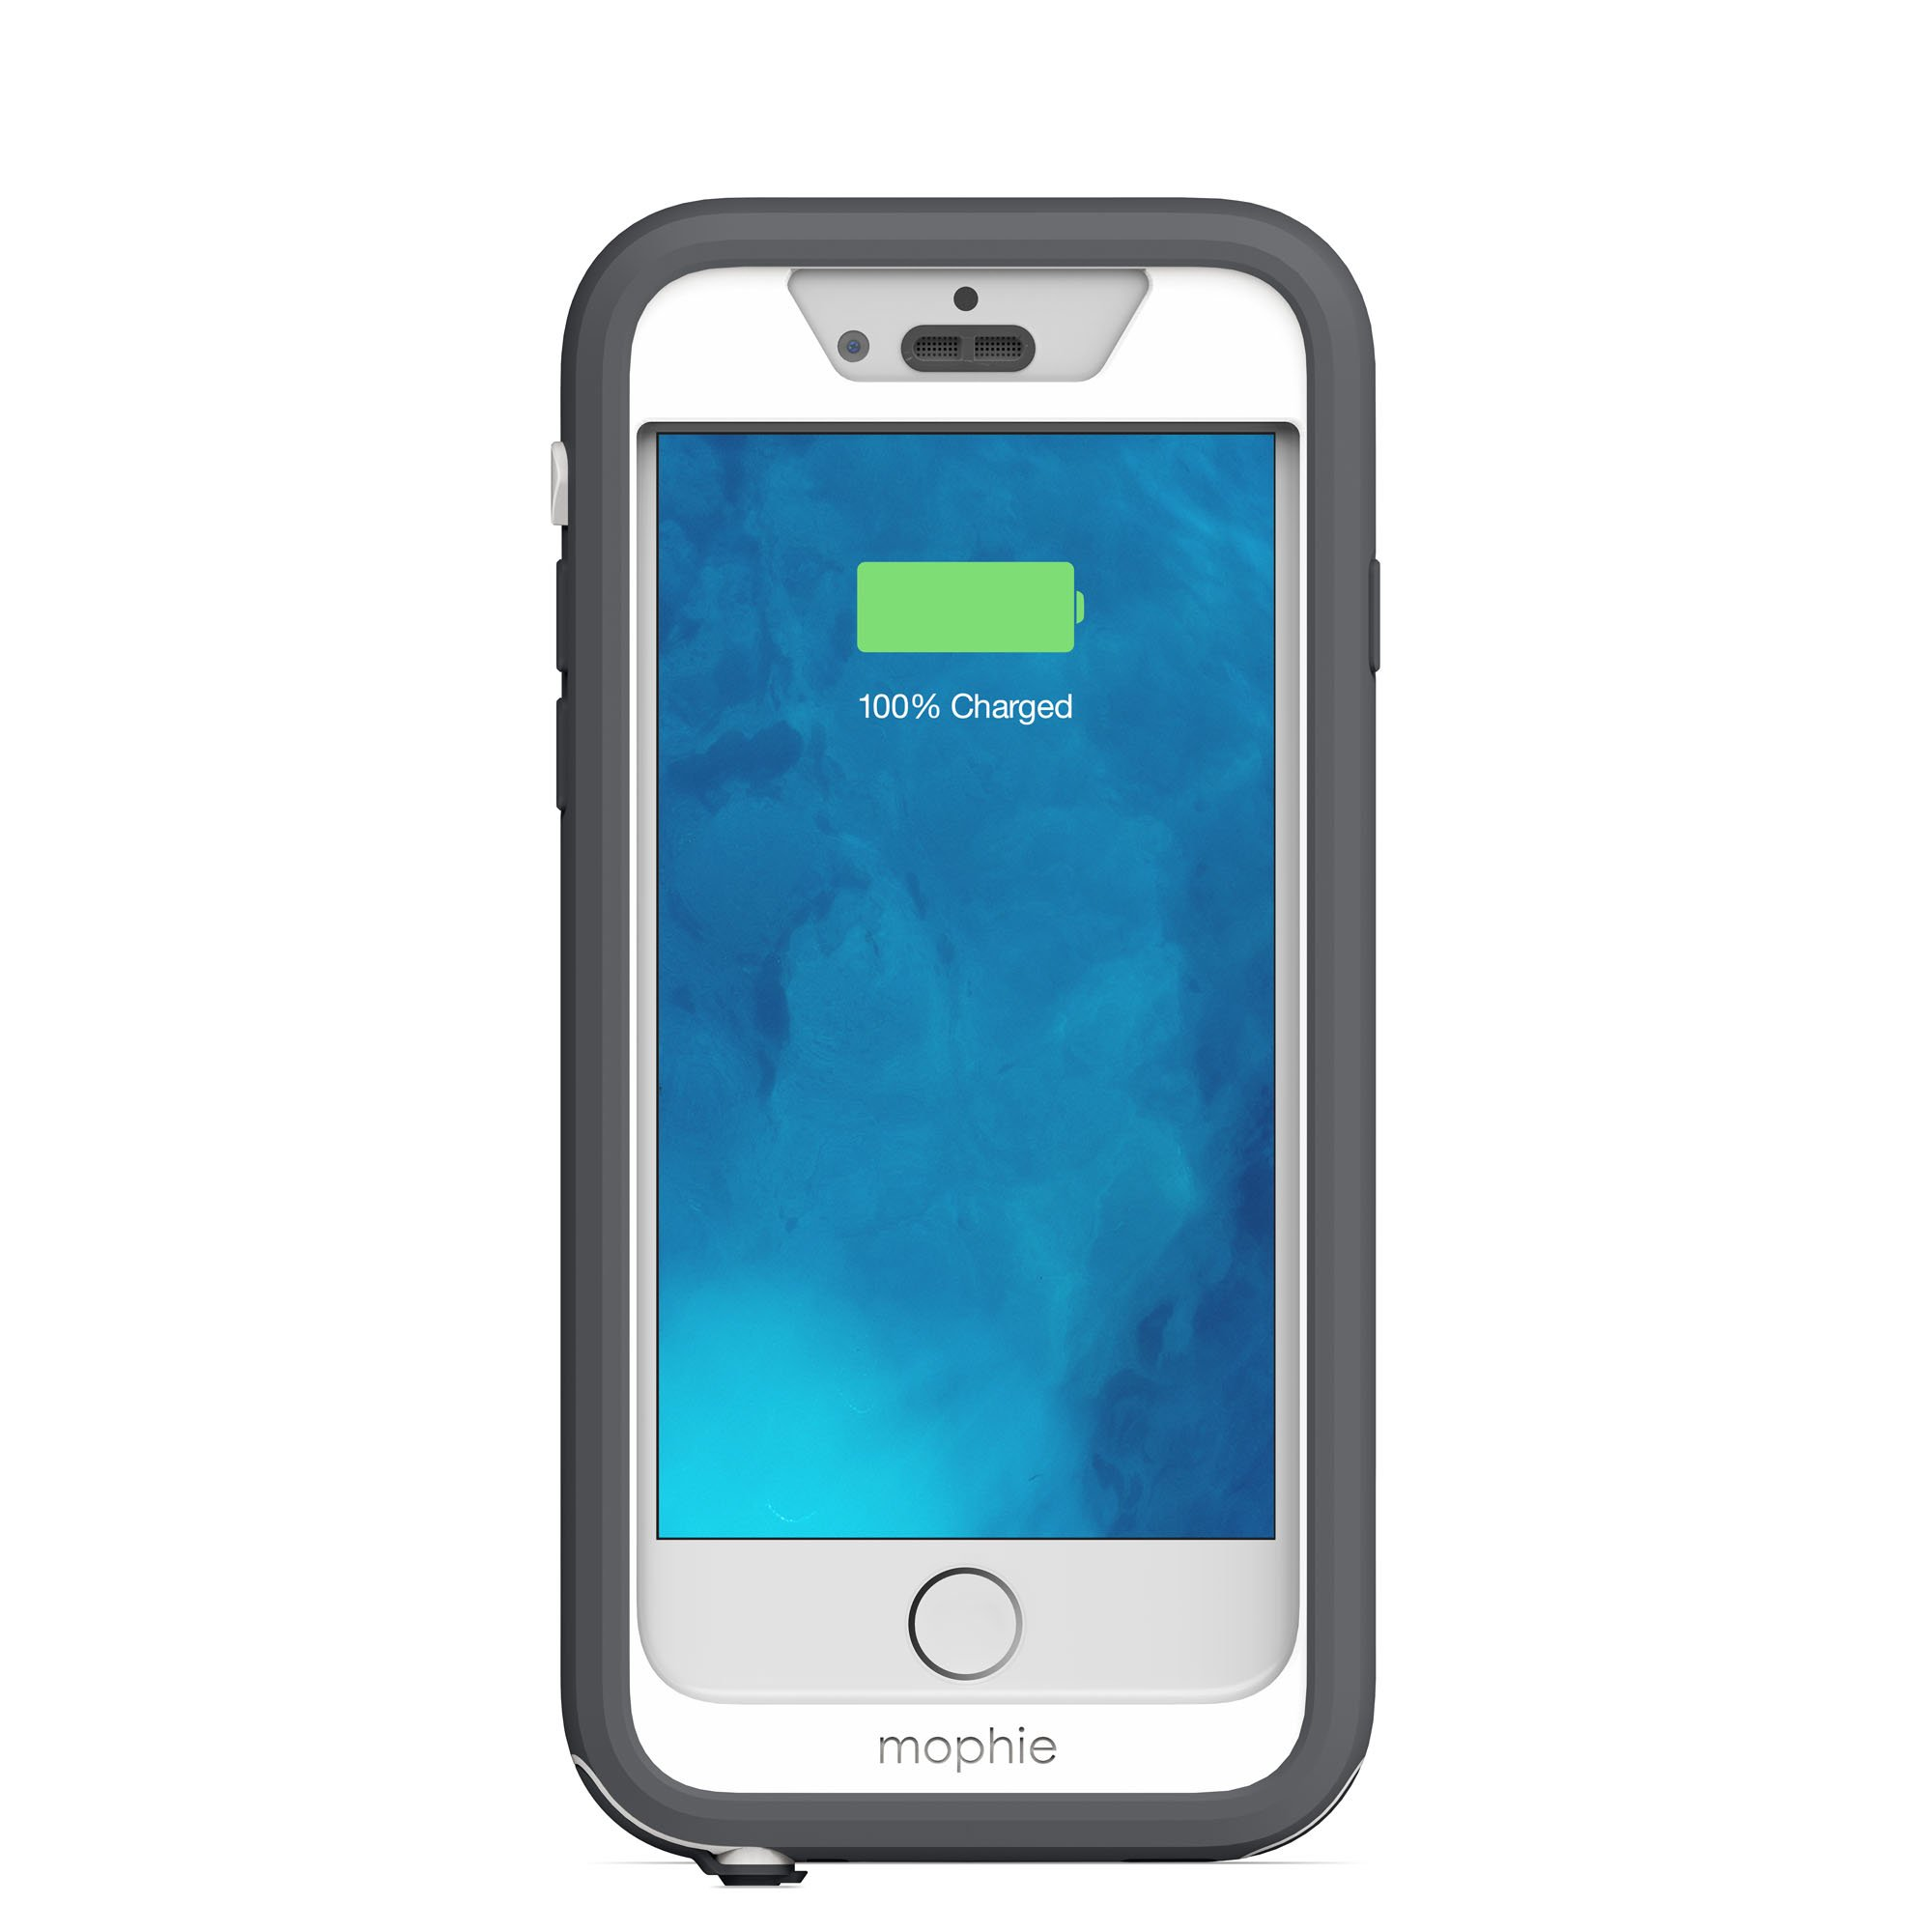 mophie juice pack H2PRO - Waterproof Mobile Protective Battery Pack Case for iPhone 6/6s - White by mophie (Image #5)